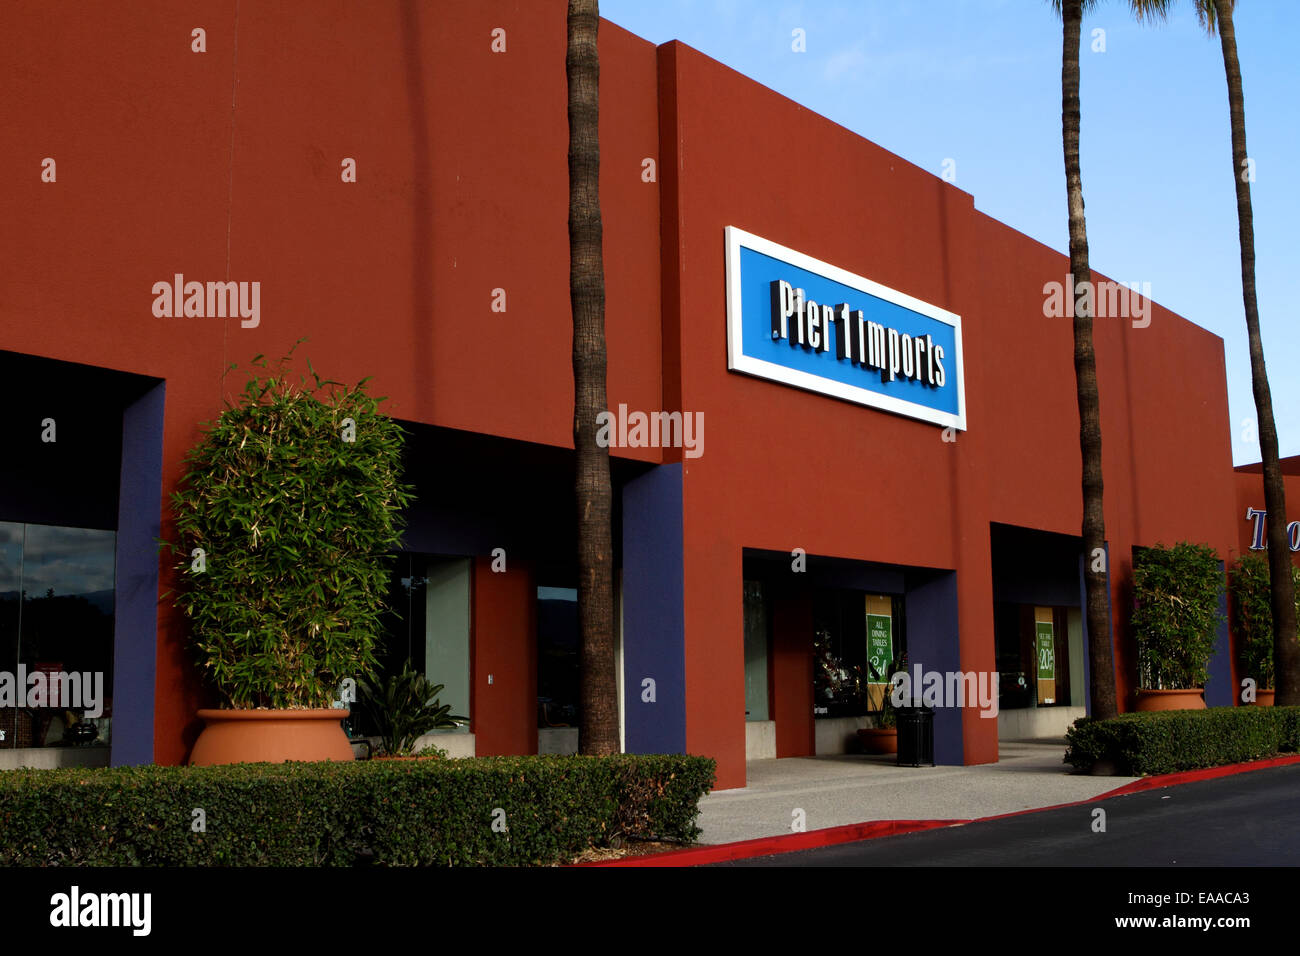 Pier 1 imports Exterior storefront sign and logo in Tustin California USA - Stock Image